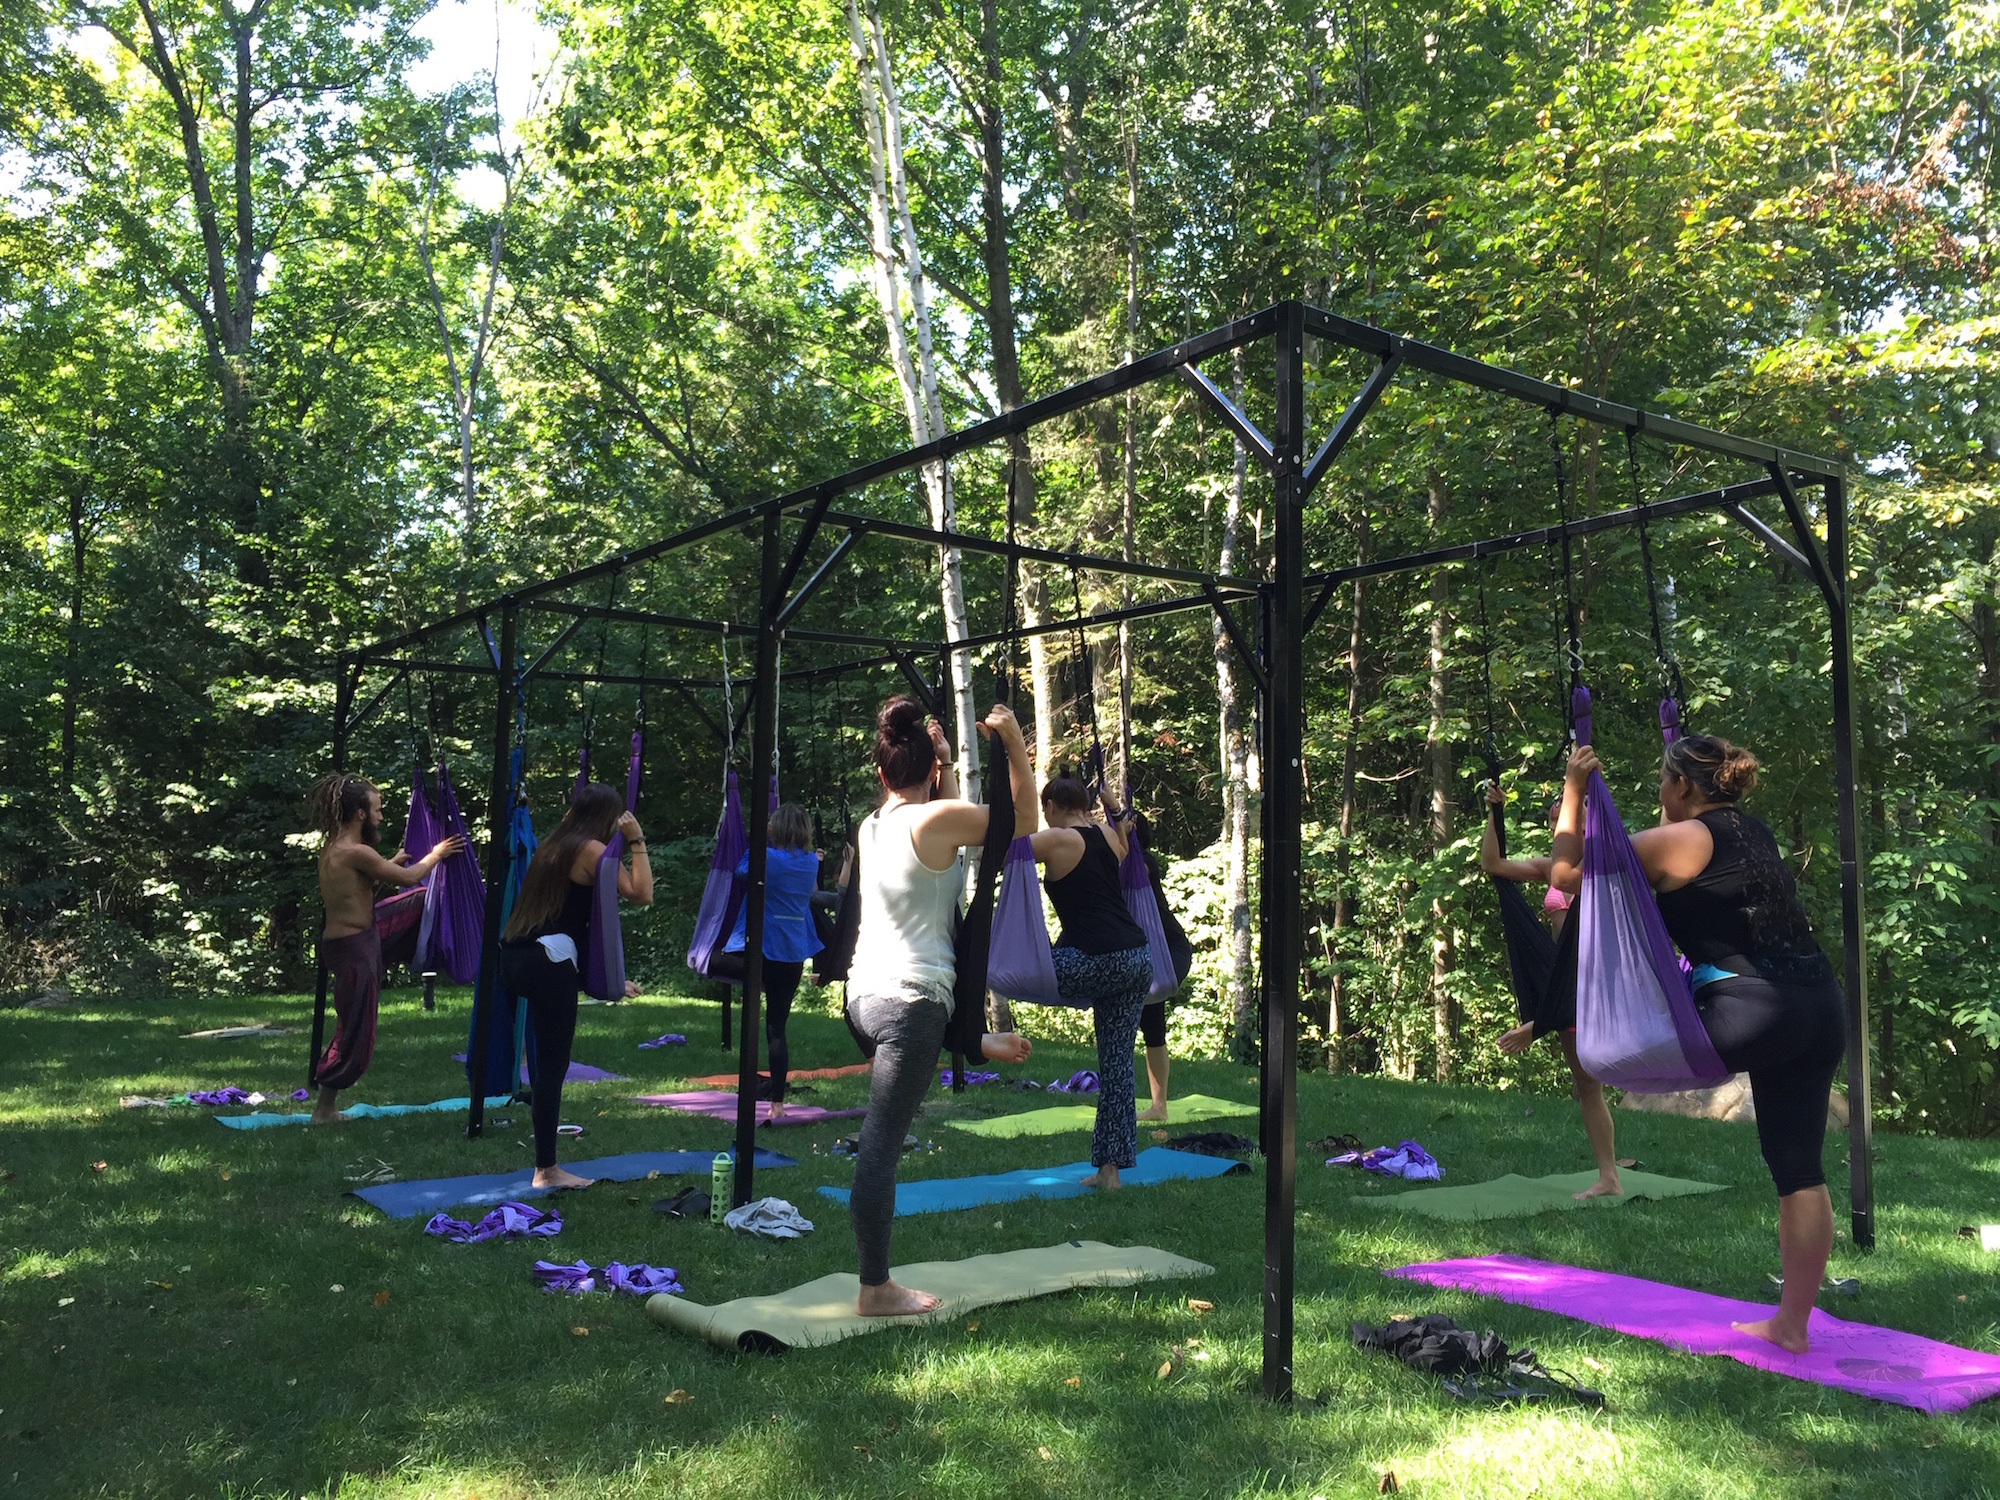 Outdoor studio | Courtesy of Float Suspension Yoga